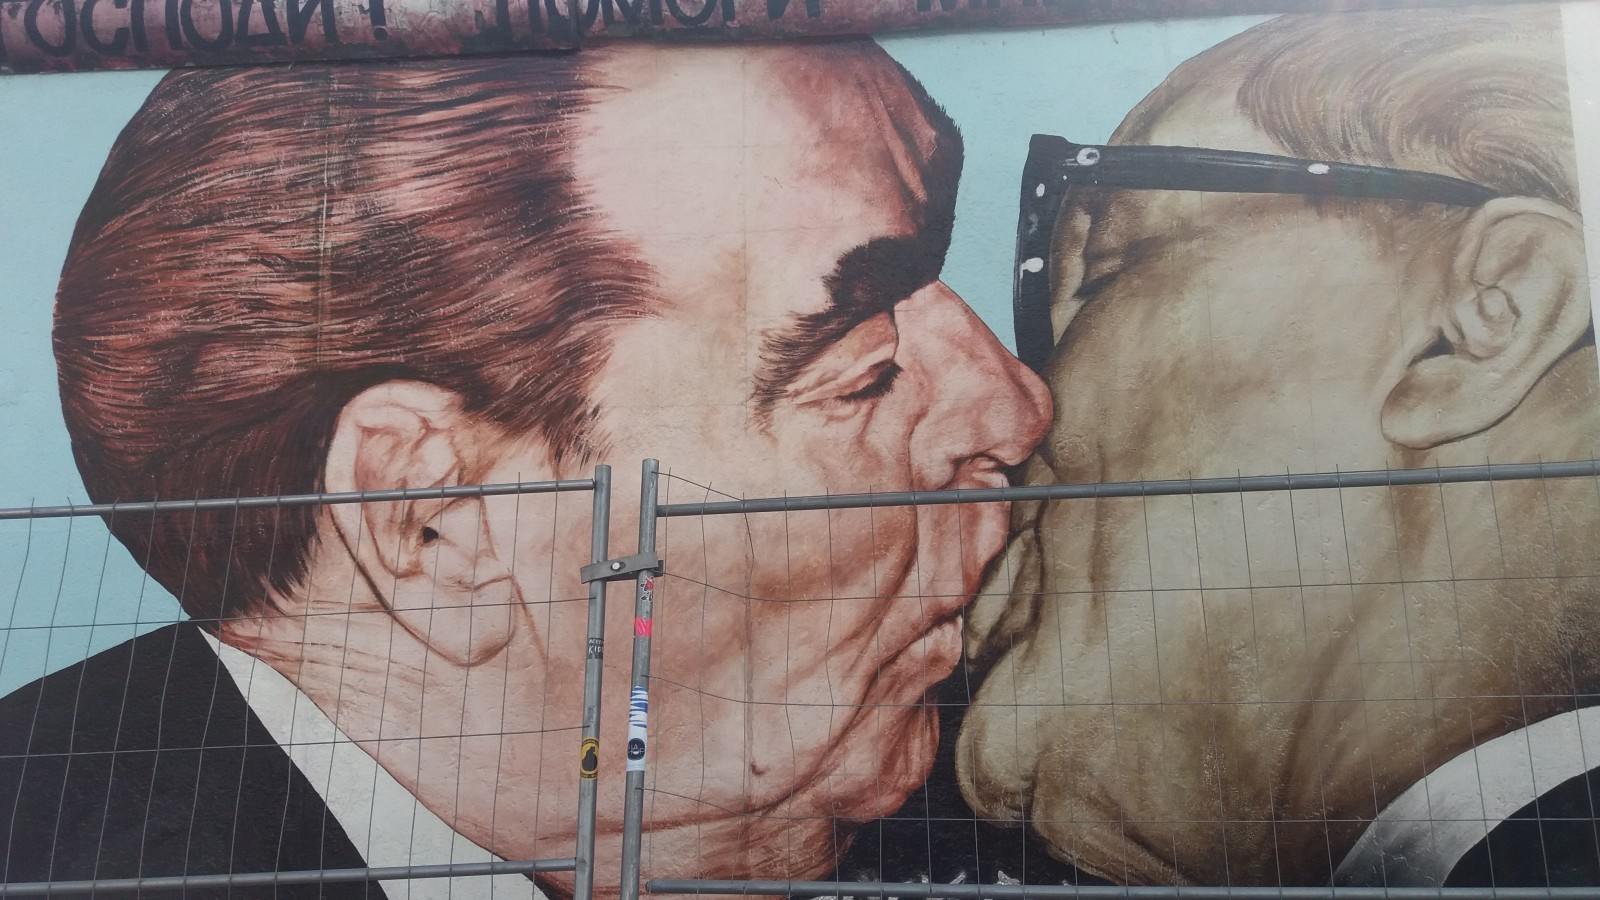 Cold War tour of Berlin East Side Gallery